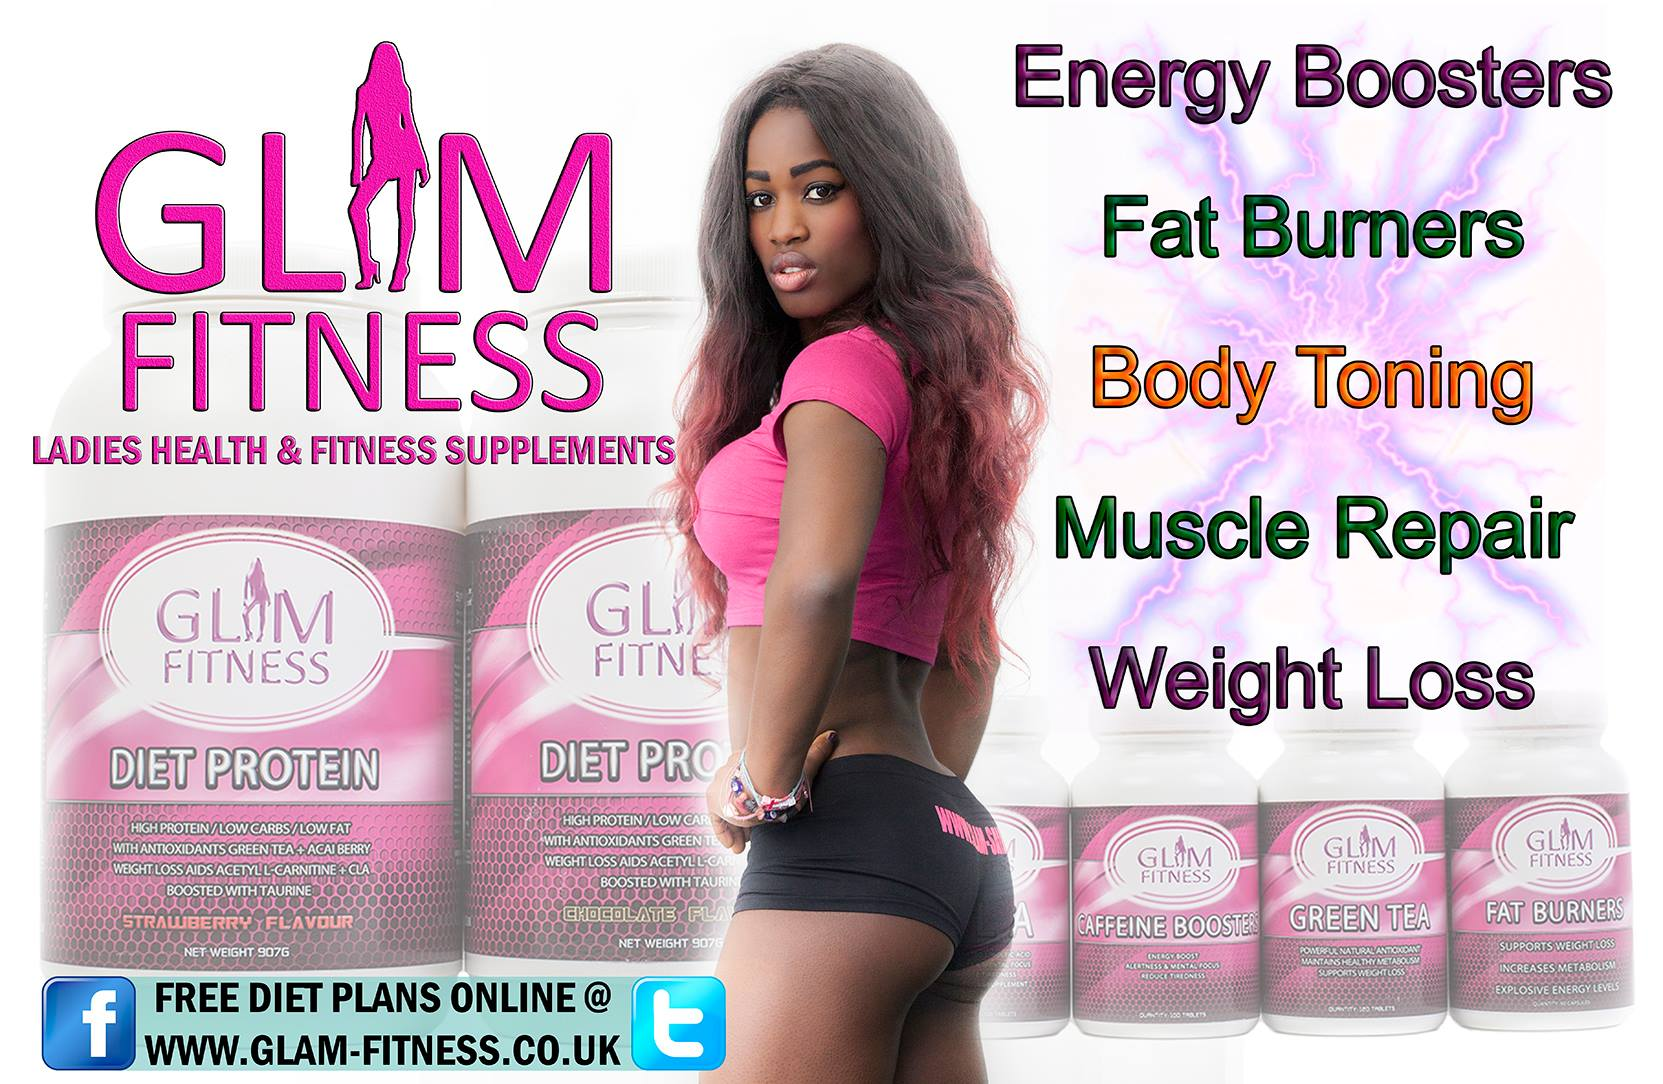 Glam Fitness Poster